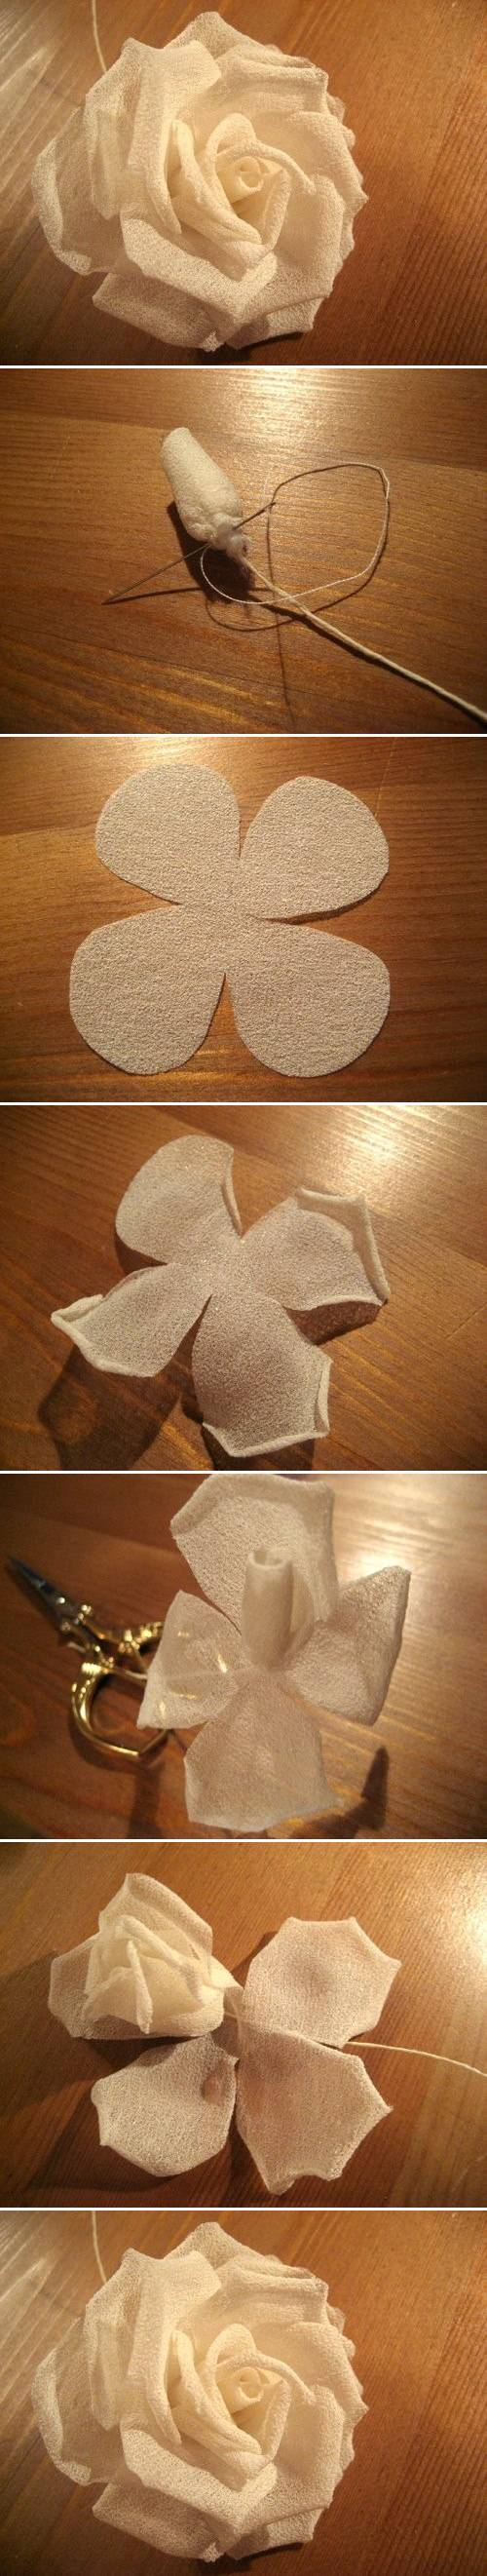 How to make Modular Silk Rose step by step DIY tutorial instructions